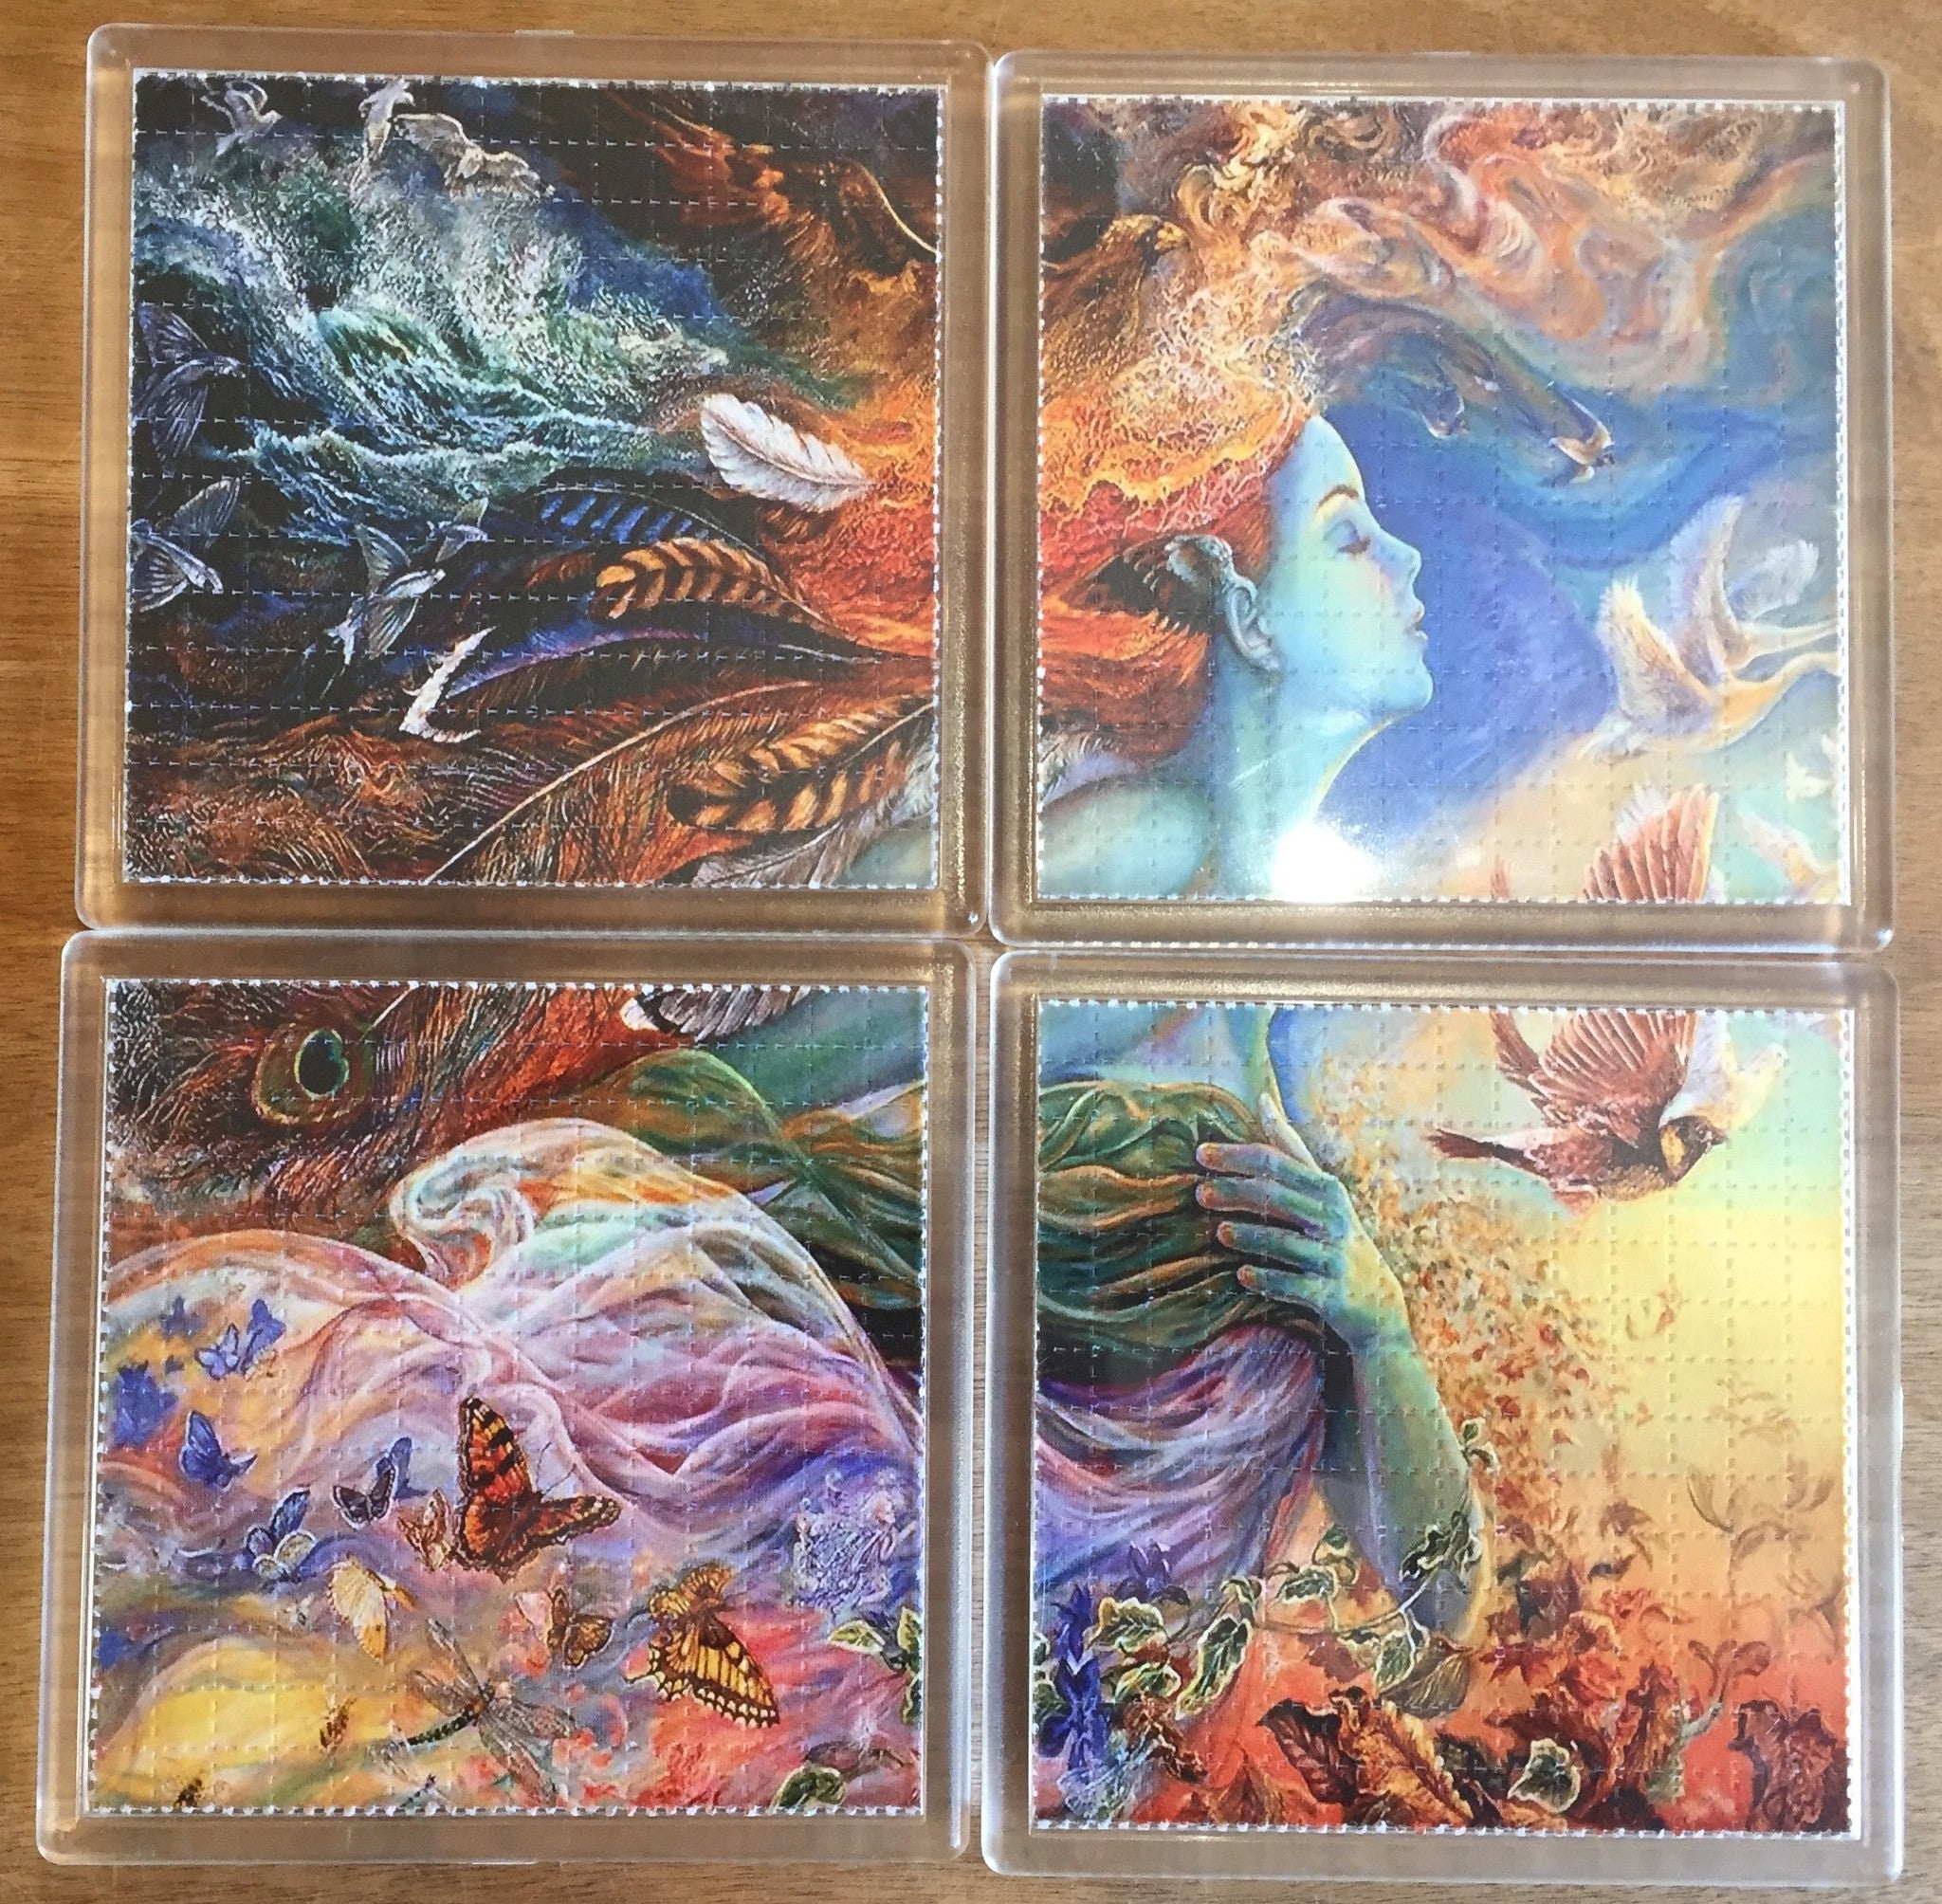 Dreamy Girl / Mother Nature Psychedelic - Blotter Art - Highly Collectible Artwork Blotter Paper Coaster (4 pack)